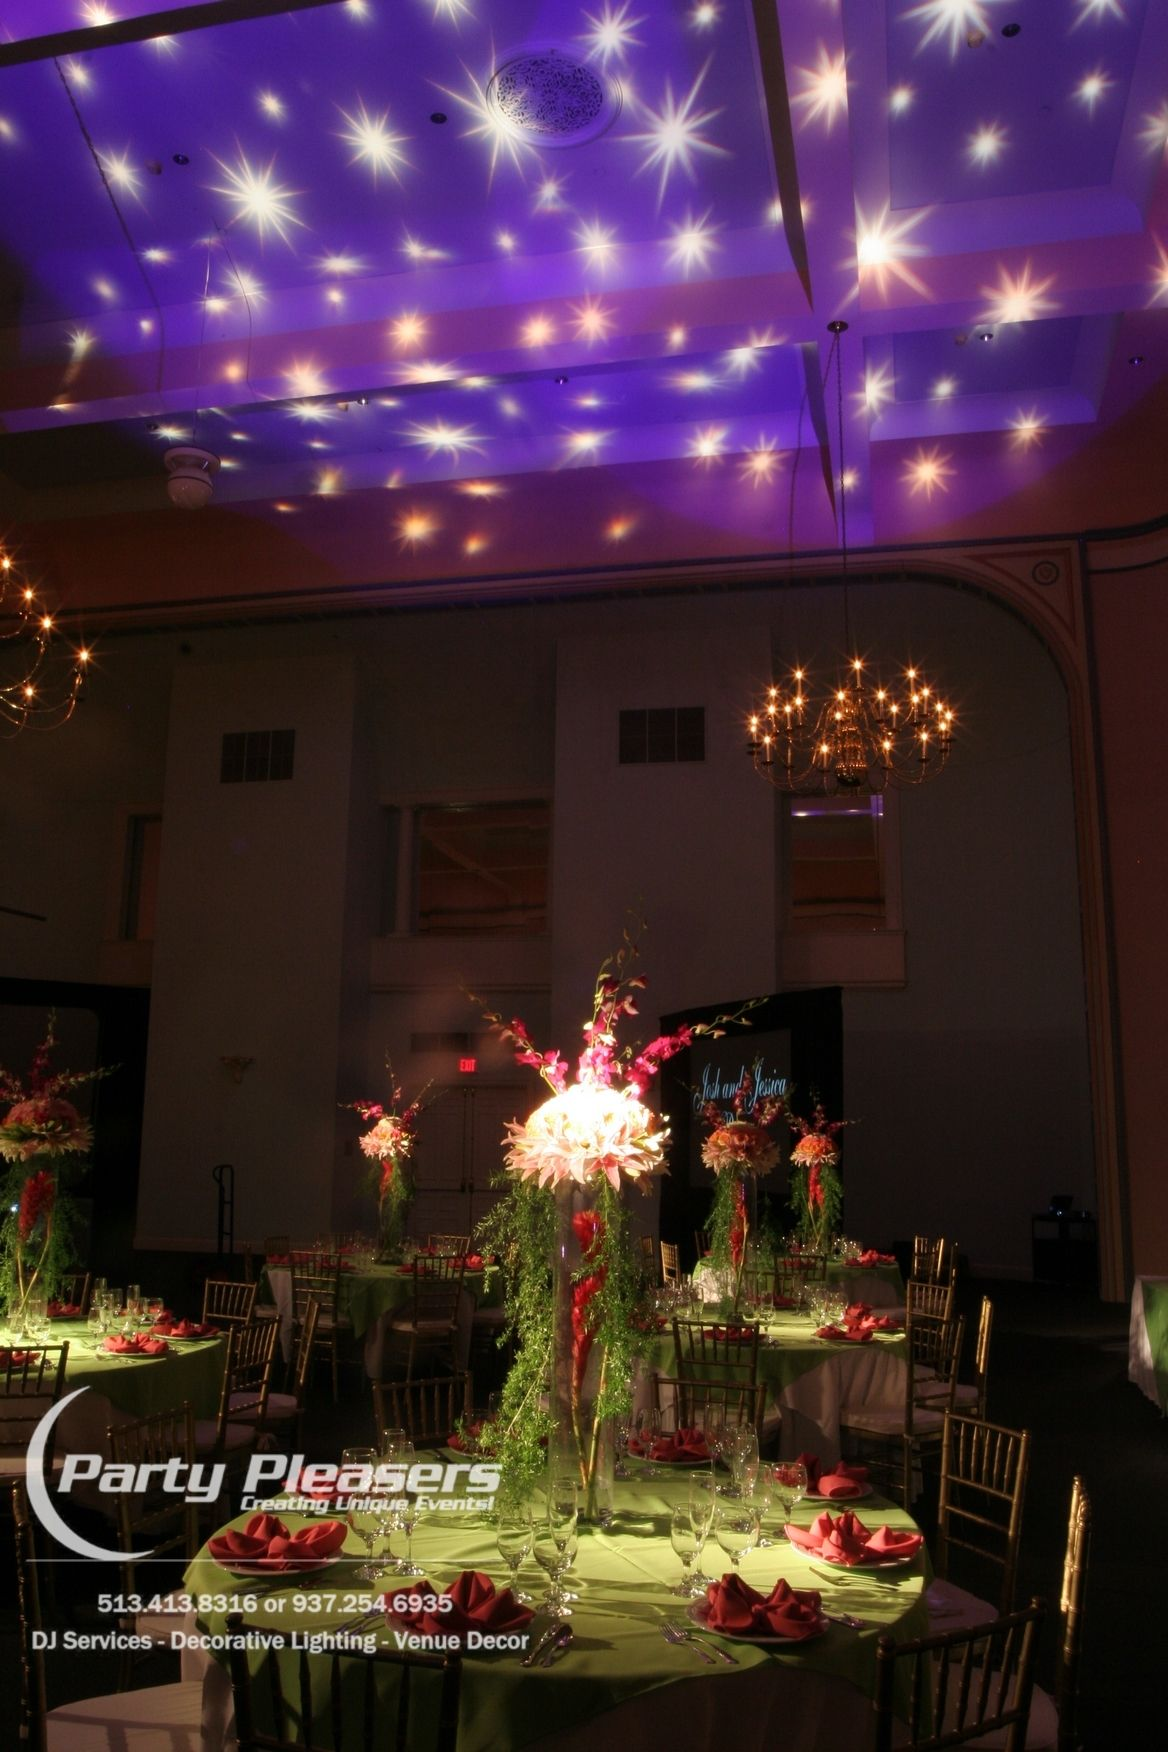 Pin by Party Pleasers Services on Themed Image Projection